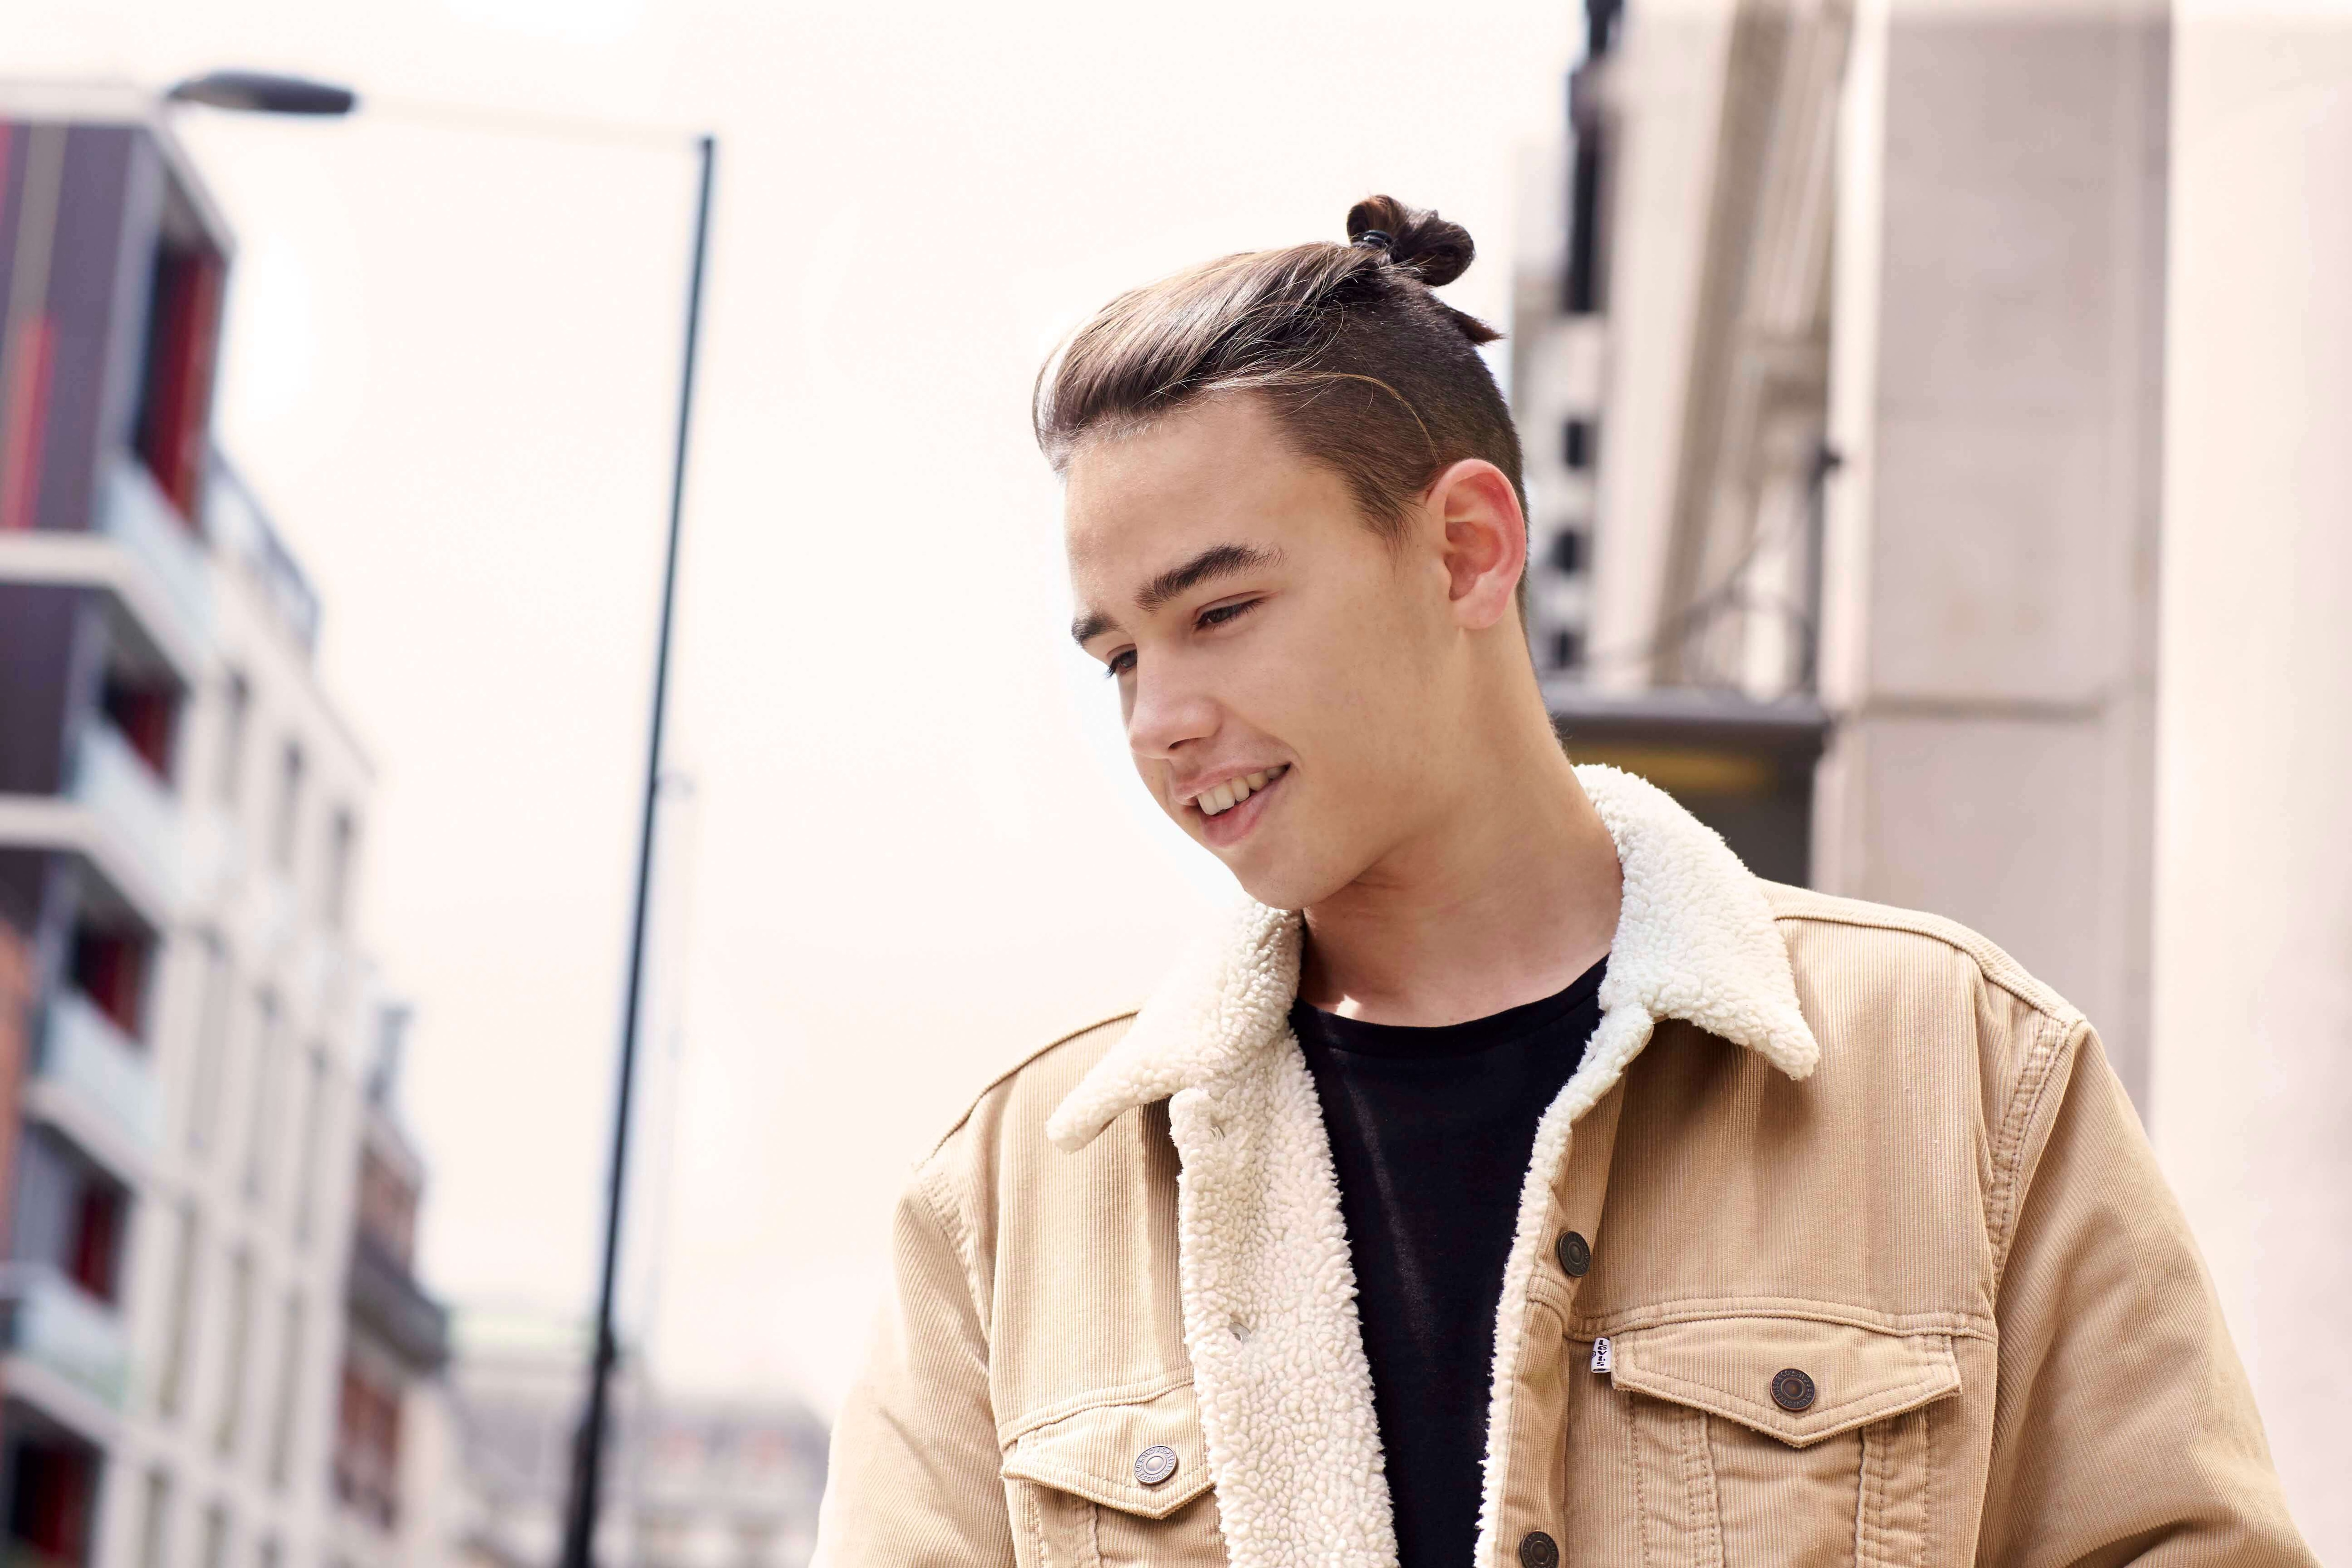 The style of men pulling their hair into a knot above or behind their head has taken male fashion by storm. Man Bun Undercut How To Get The Look And 6 Ways To Style It